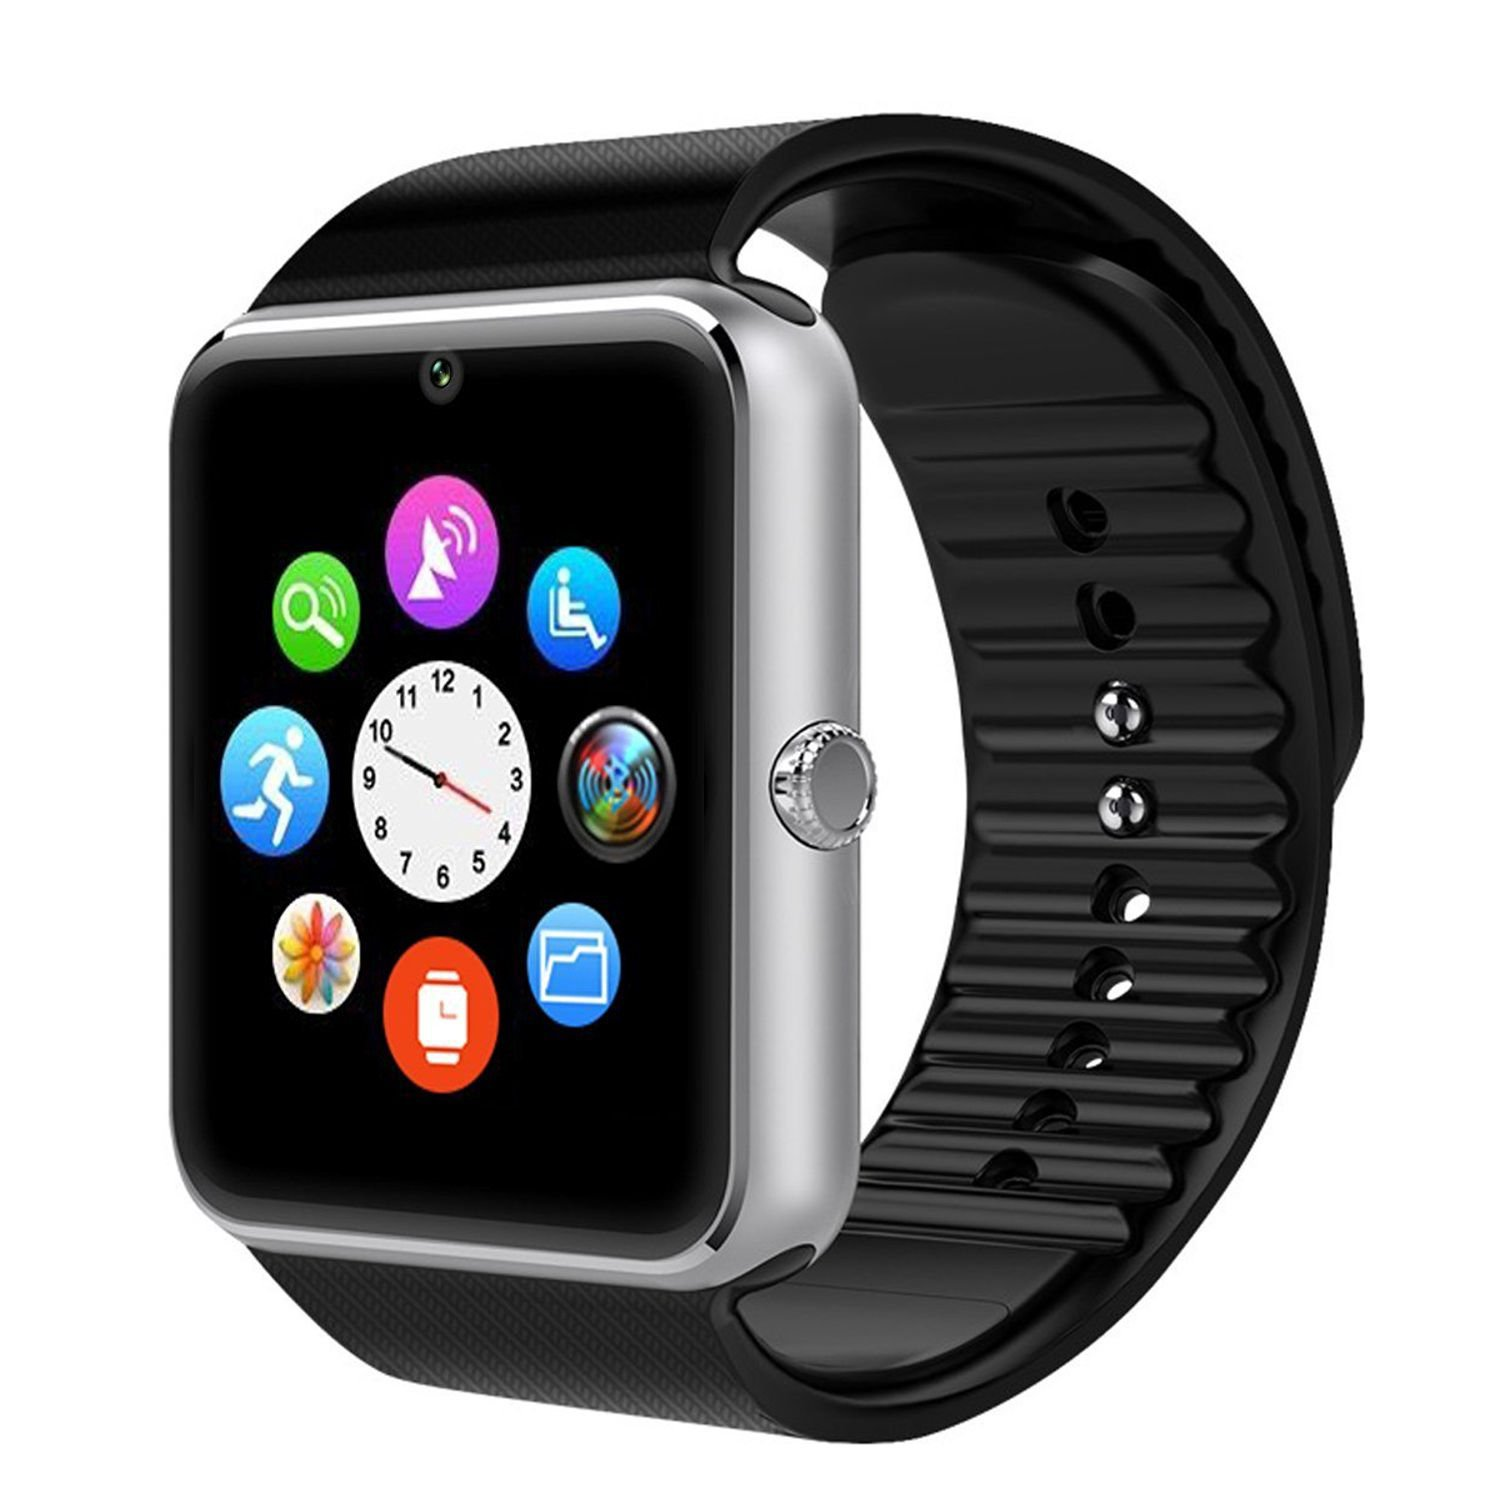 TOP-MAX Bluetooth Smart Watch Silver, GT08 Smartwatch with SIM Card Slot  and Camera for Android and IOS Smartphone(APP not Compatible with IOS  System)